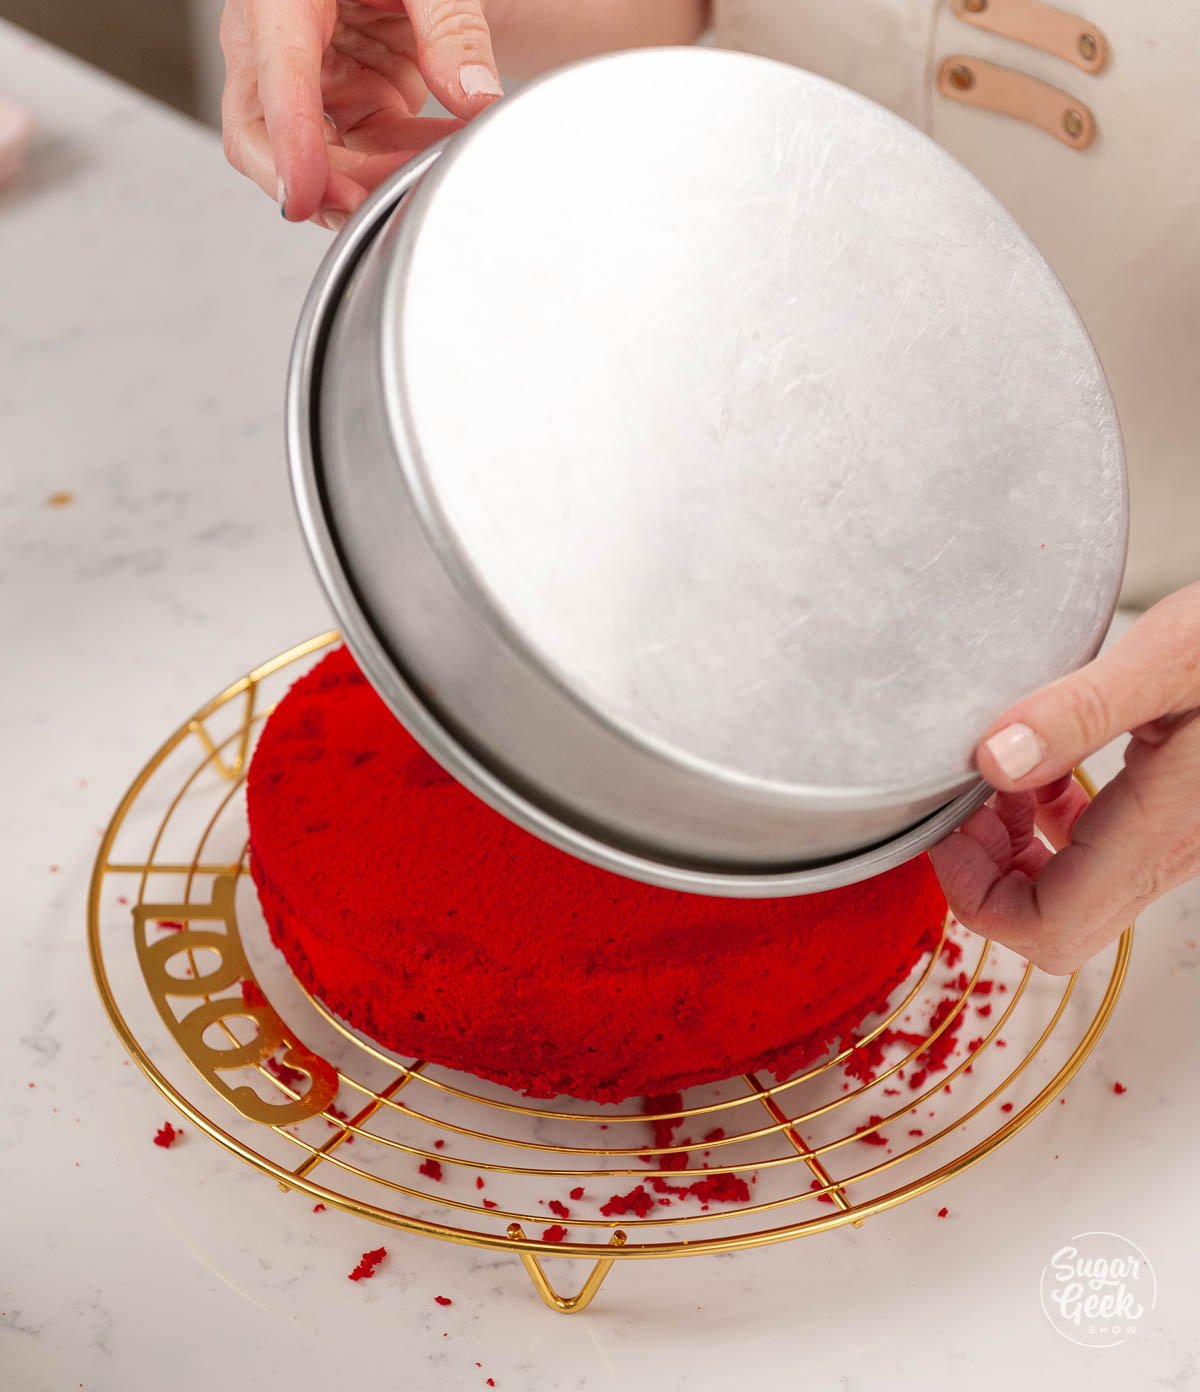 turning baked cake layers onto a cooling rack